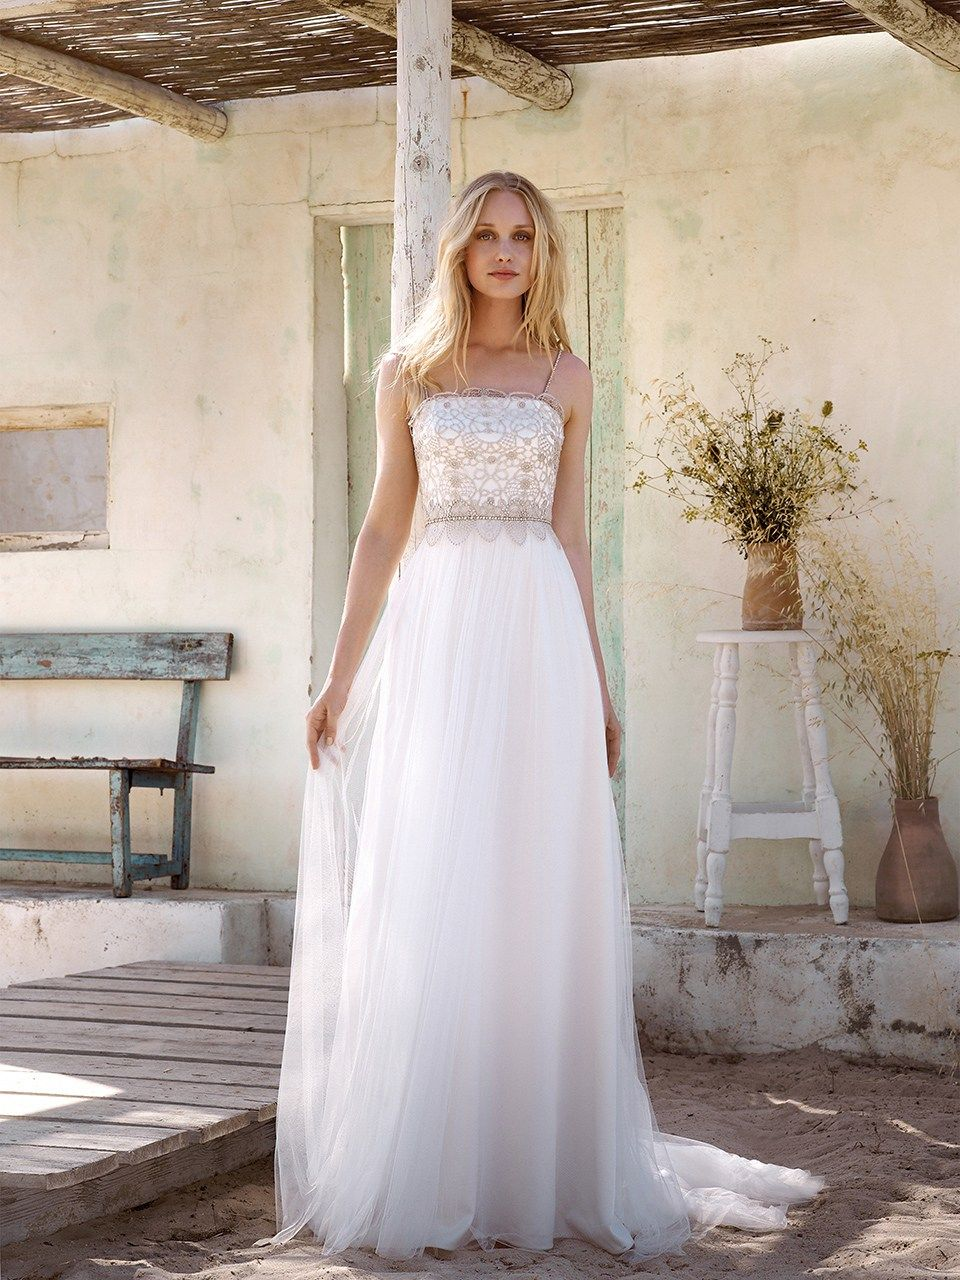 Rembo Styling - bohemian, elegant and fashion forward wedding gowns, visit rembo-styling.com.